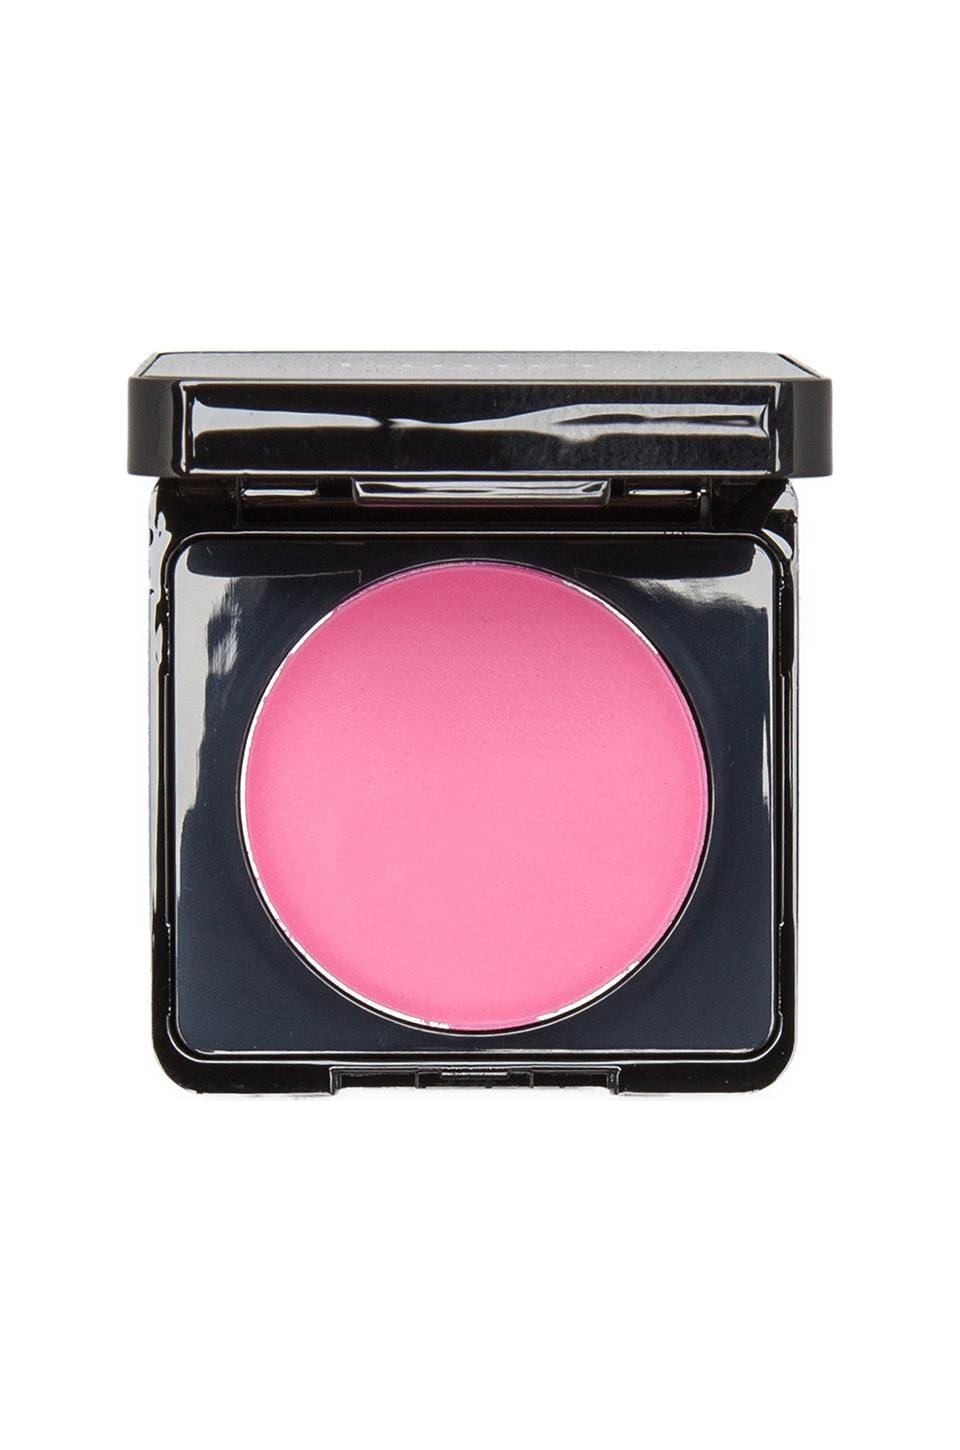 butter LONDON Cheeky Cream Blush in Pistol Pink